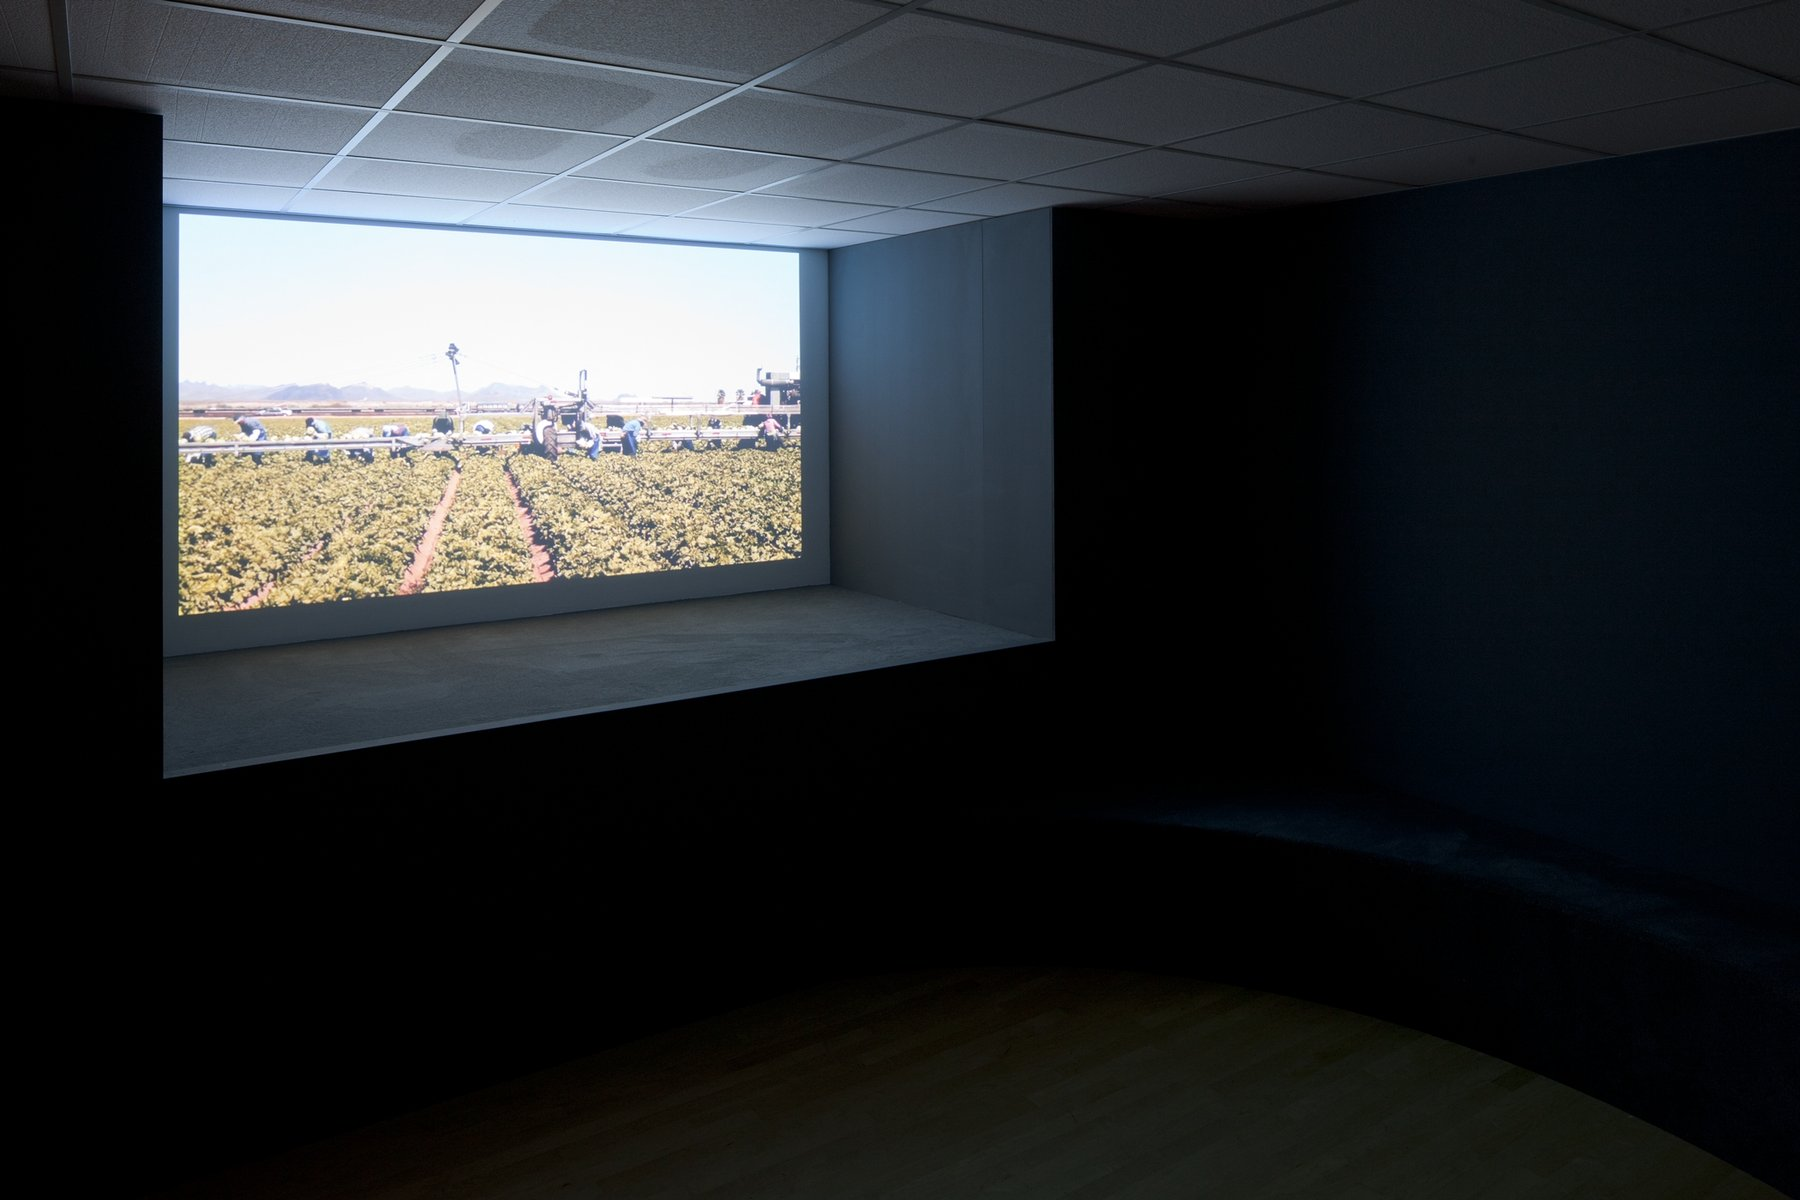 A projection of a field with works in it